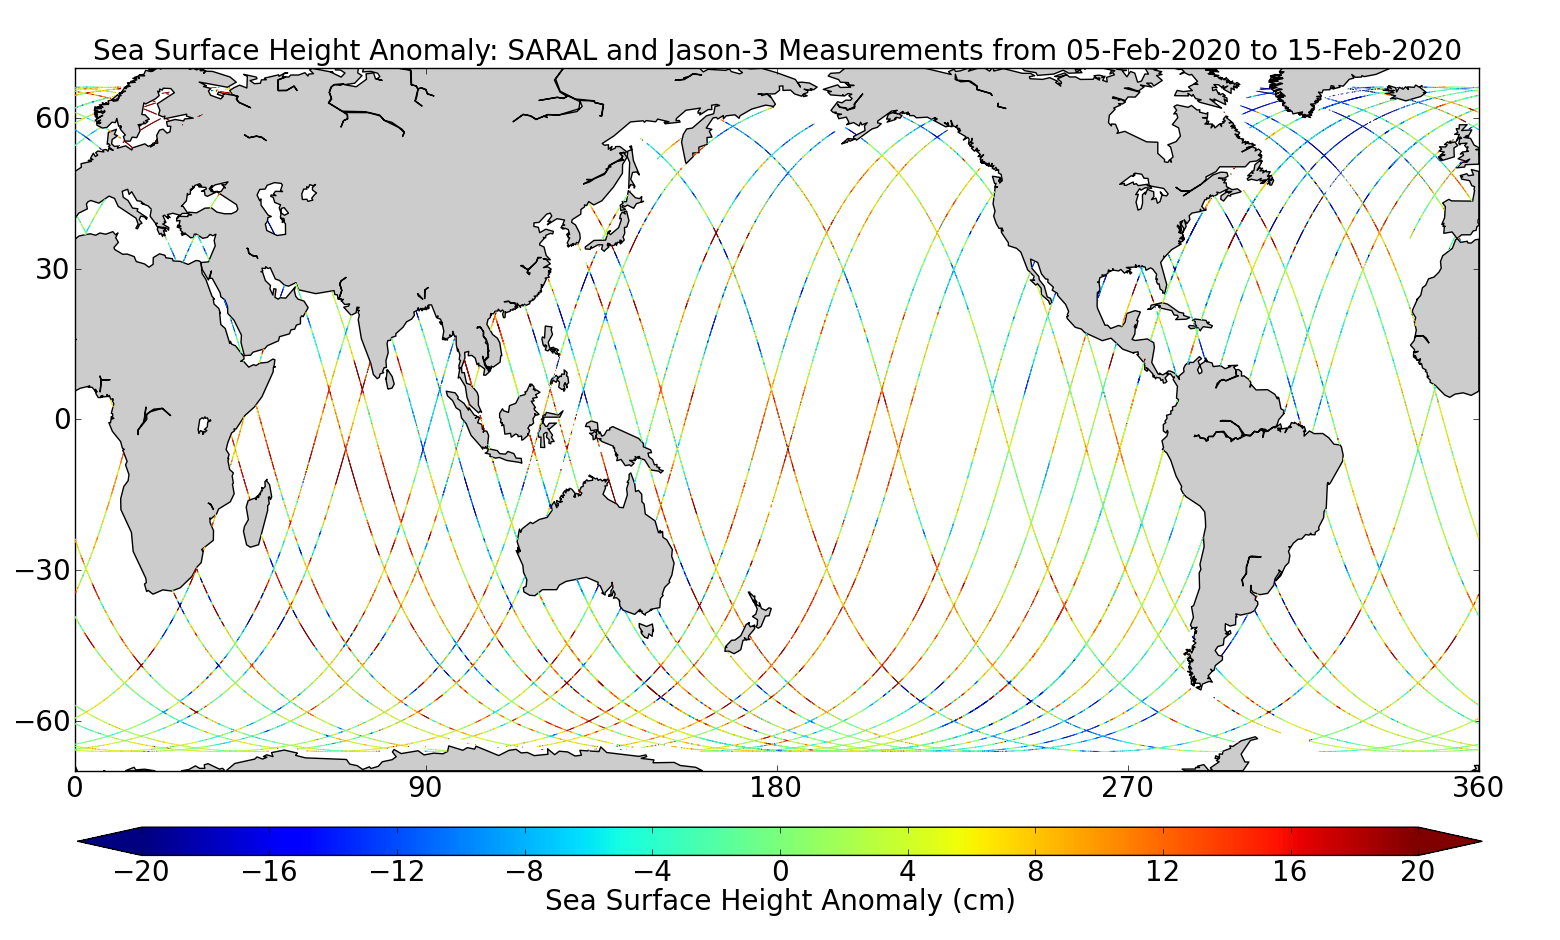 Sea Surface Height Anomaly: SARAL and Jason-3 Measurements from 05-Feb-2020 to 15-Feb-2020